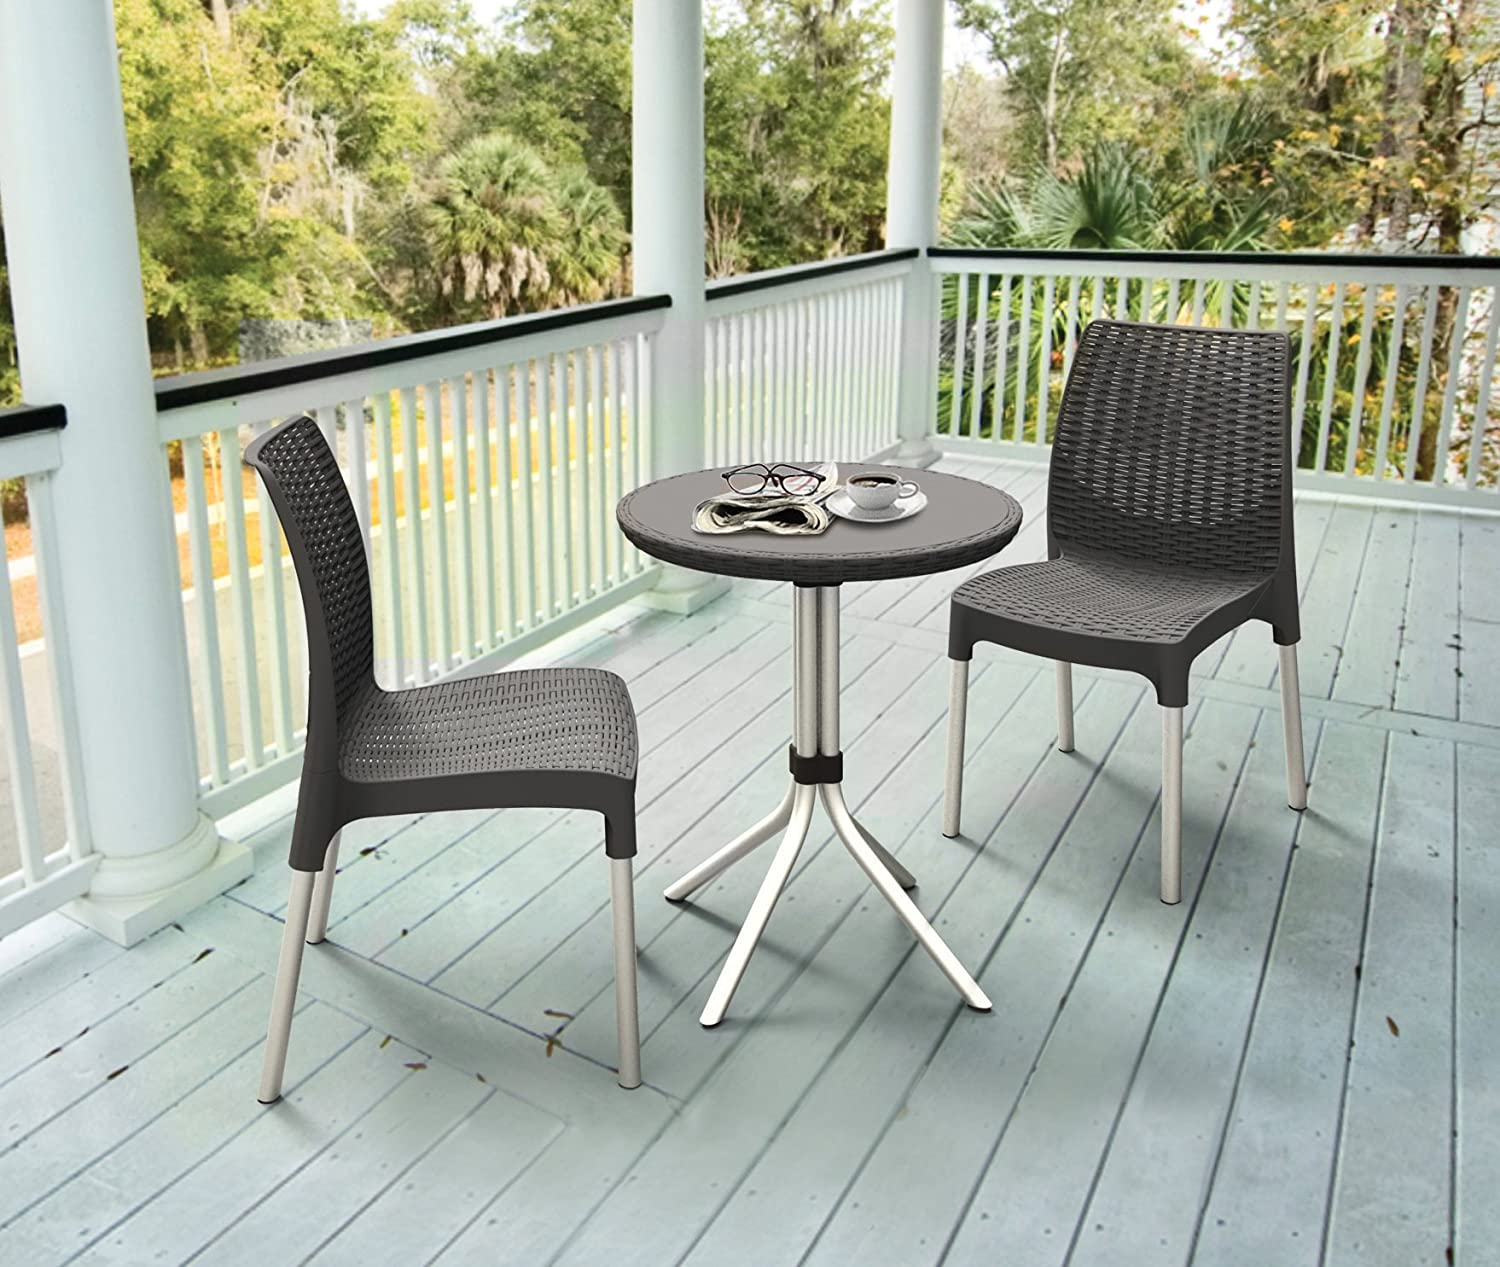 Amazon.com: Keter Chelsea 3 Piece Resin Outdoor Patio Furniture Dining Bistro  Set With Patio Table And Chairs, Charcoal: Garden U0026 Outdoor